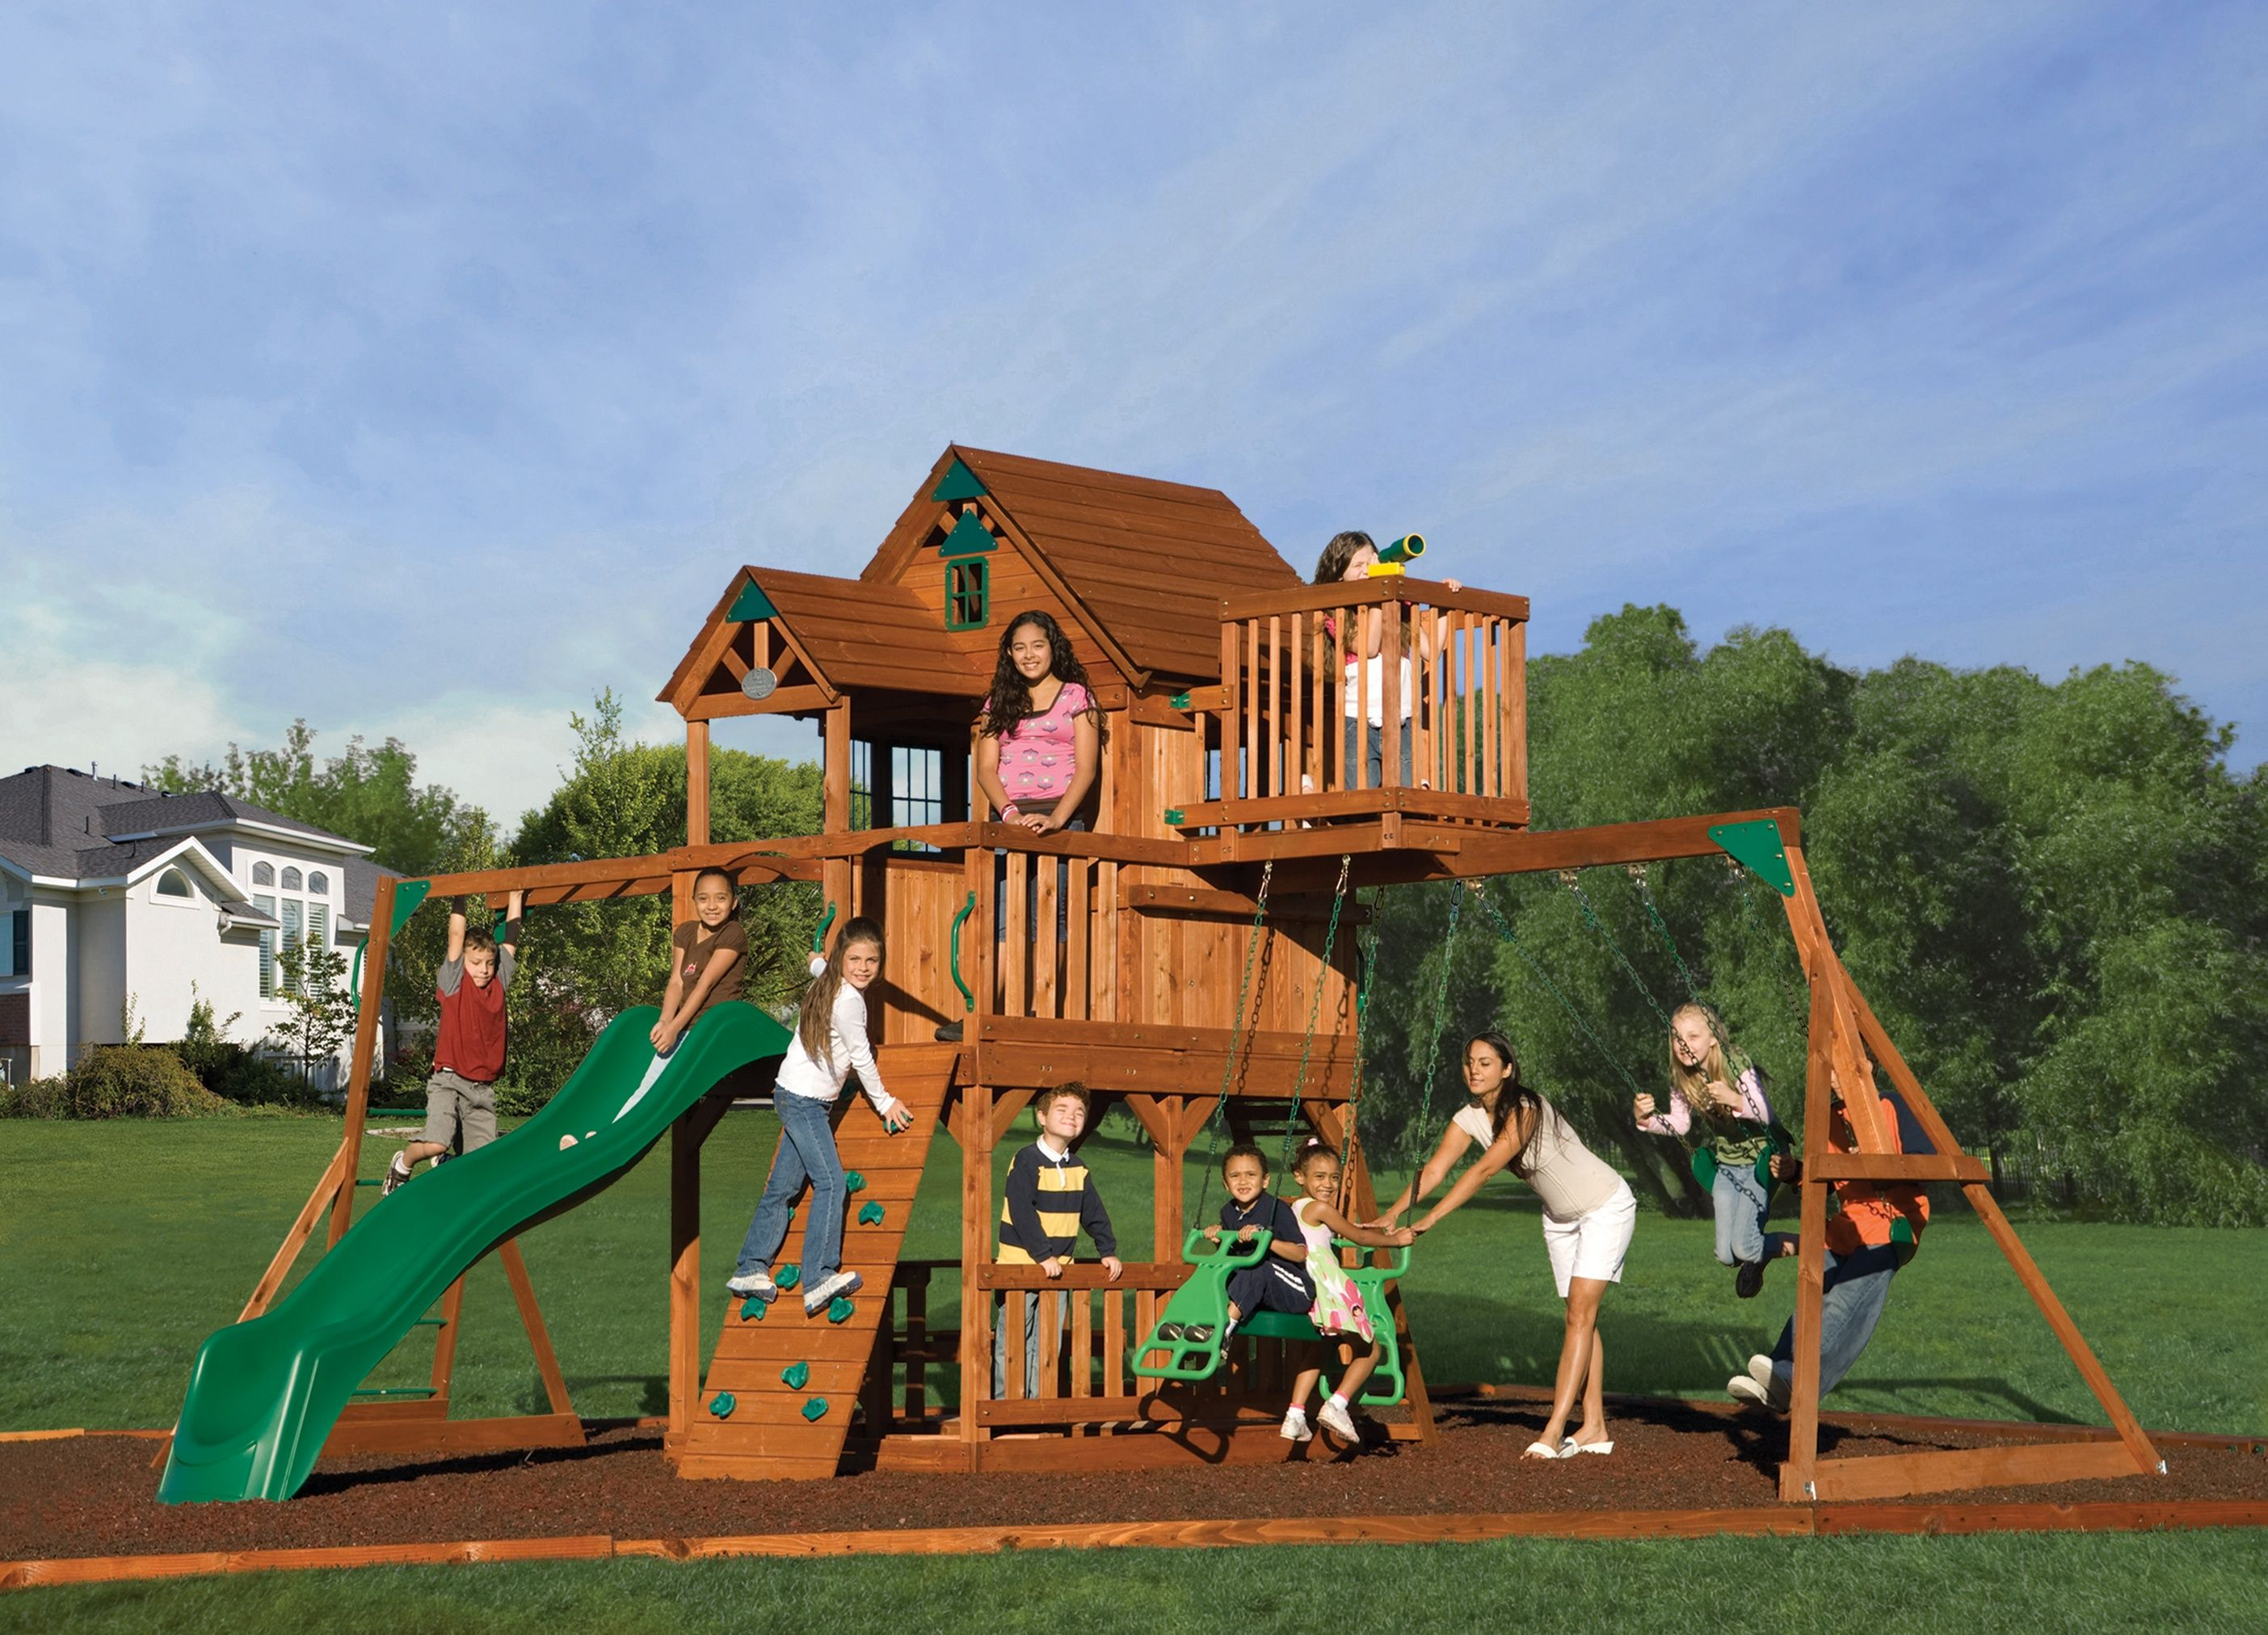 First Kids White House Playset Sets